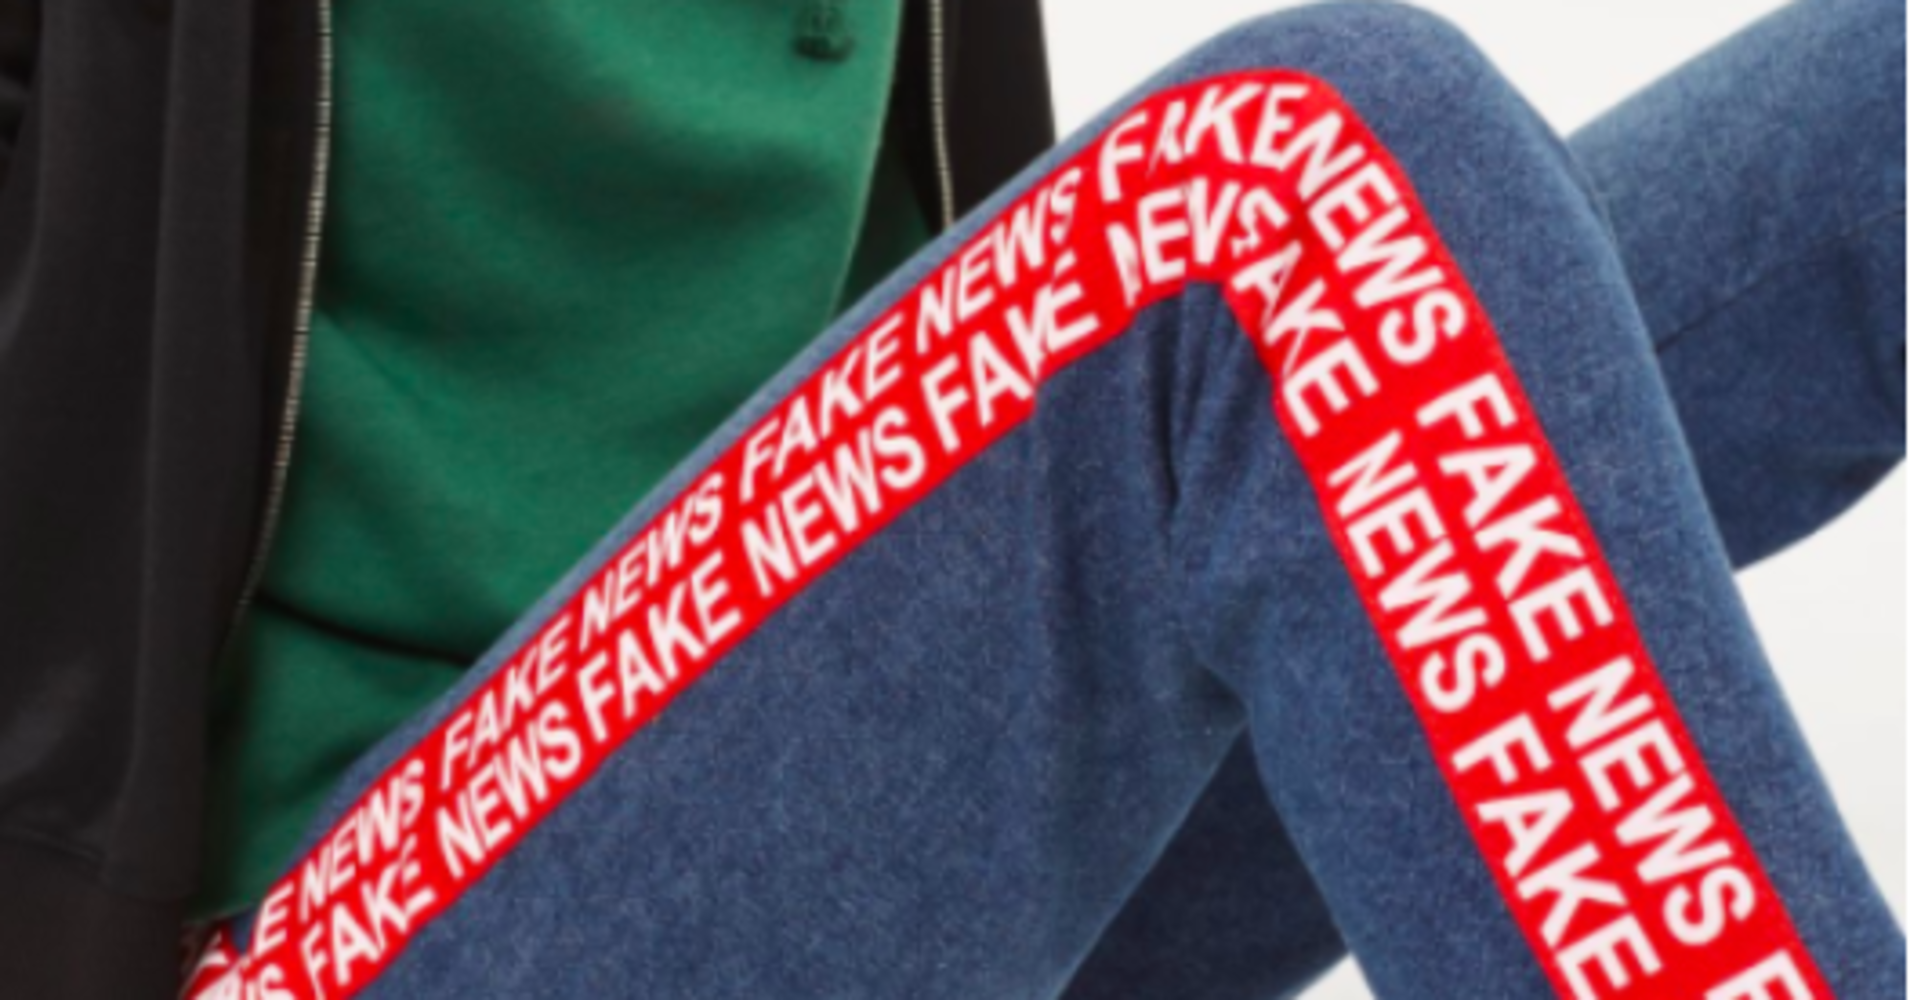 Unfortunately These 'Fake News' Jeans From Topshop Are Very Real